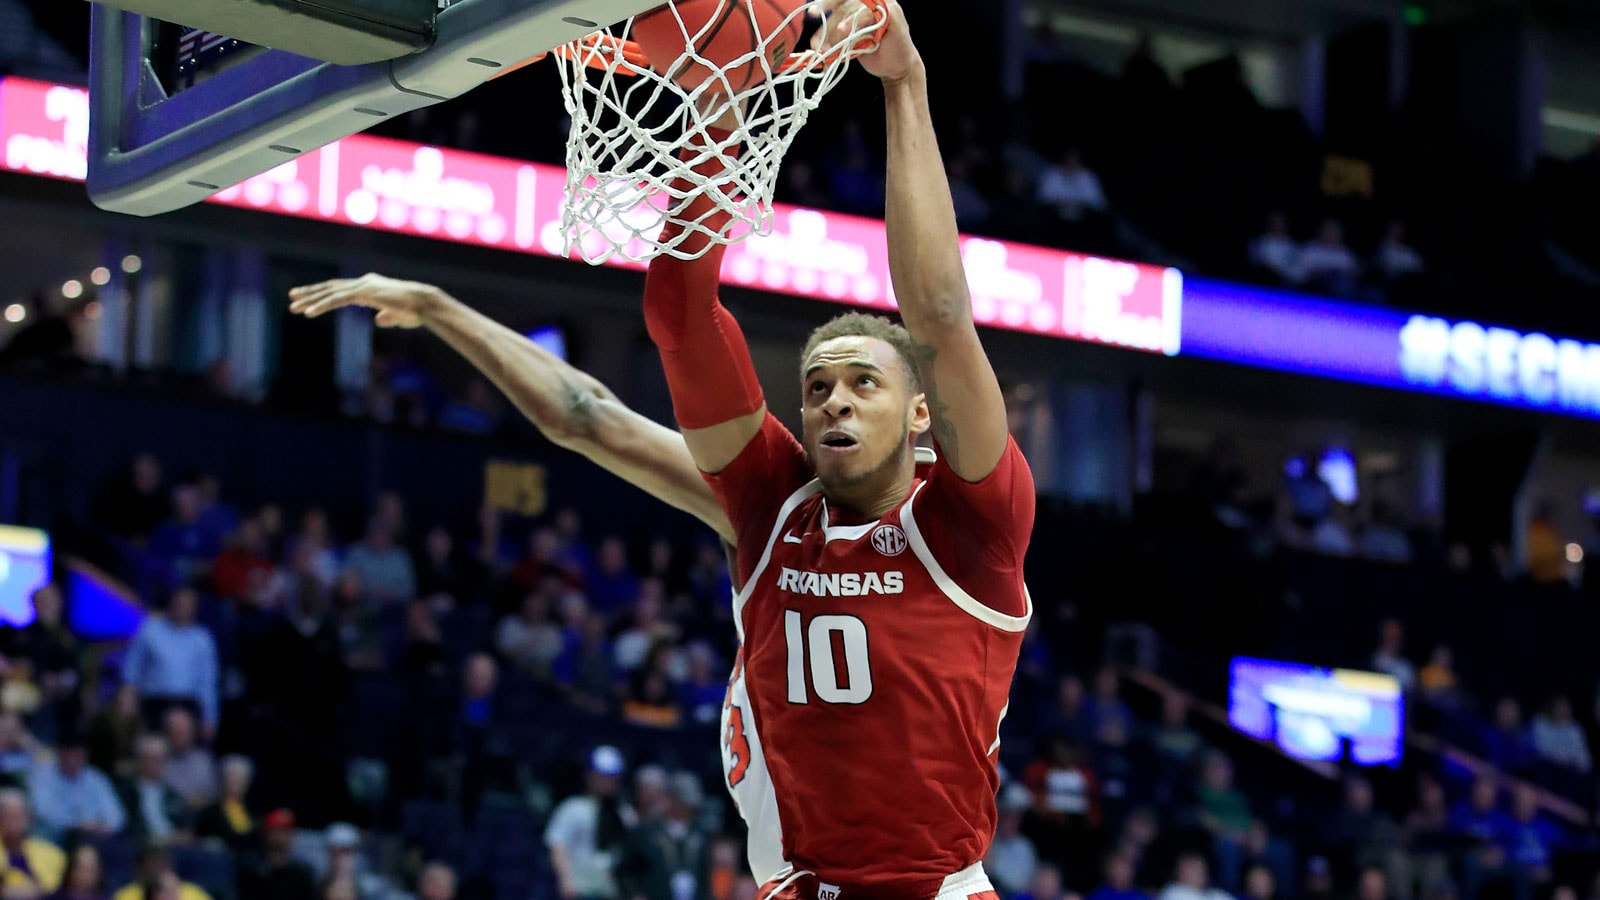 Daniel Gafford #10 of the Arkansas Razorbacks dunks the ball against the Florida Gators during the second round of the SEC Basketball Tournament at Bridgestone Arena on March 14, 2019 in Nashville, Tennessee.